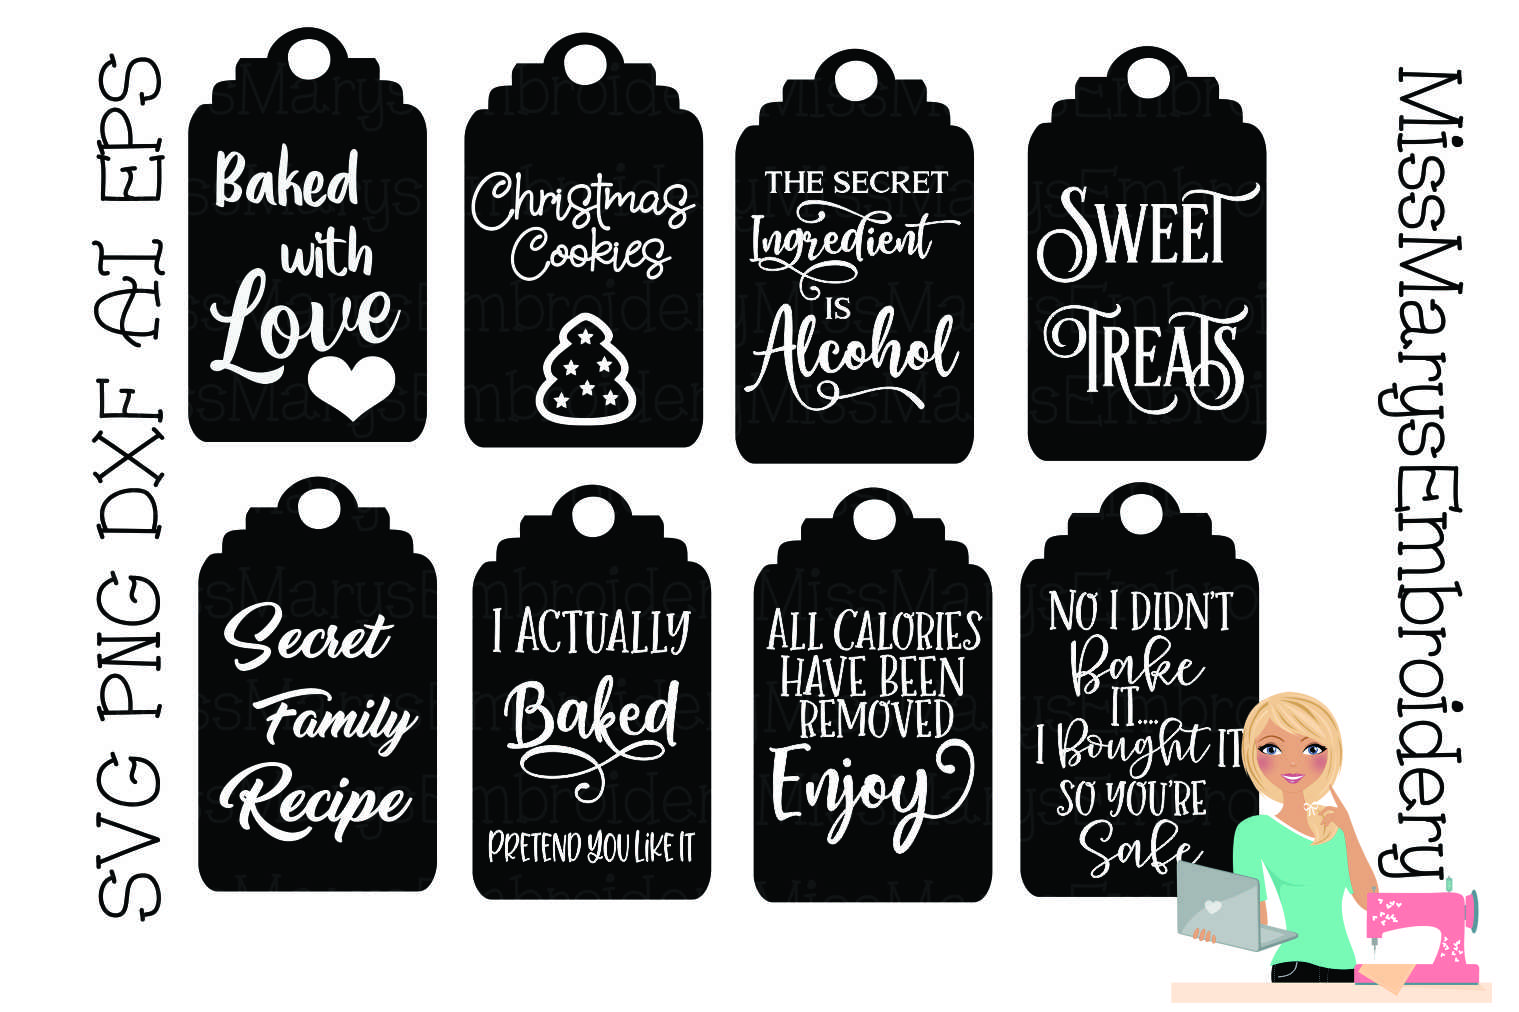 Funny Food Gift Tags SVG Cutting File PNG DXF EPS AI example image 1